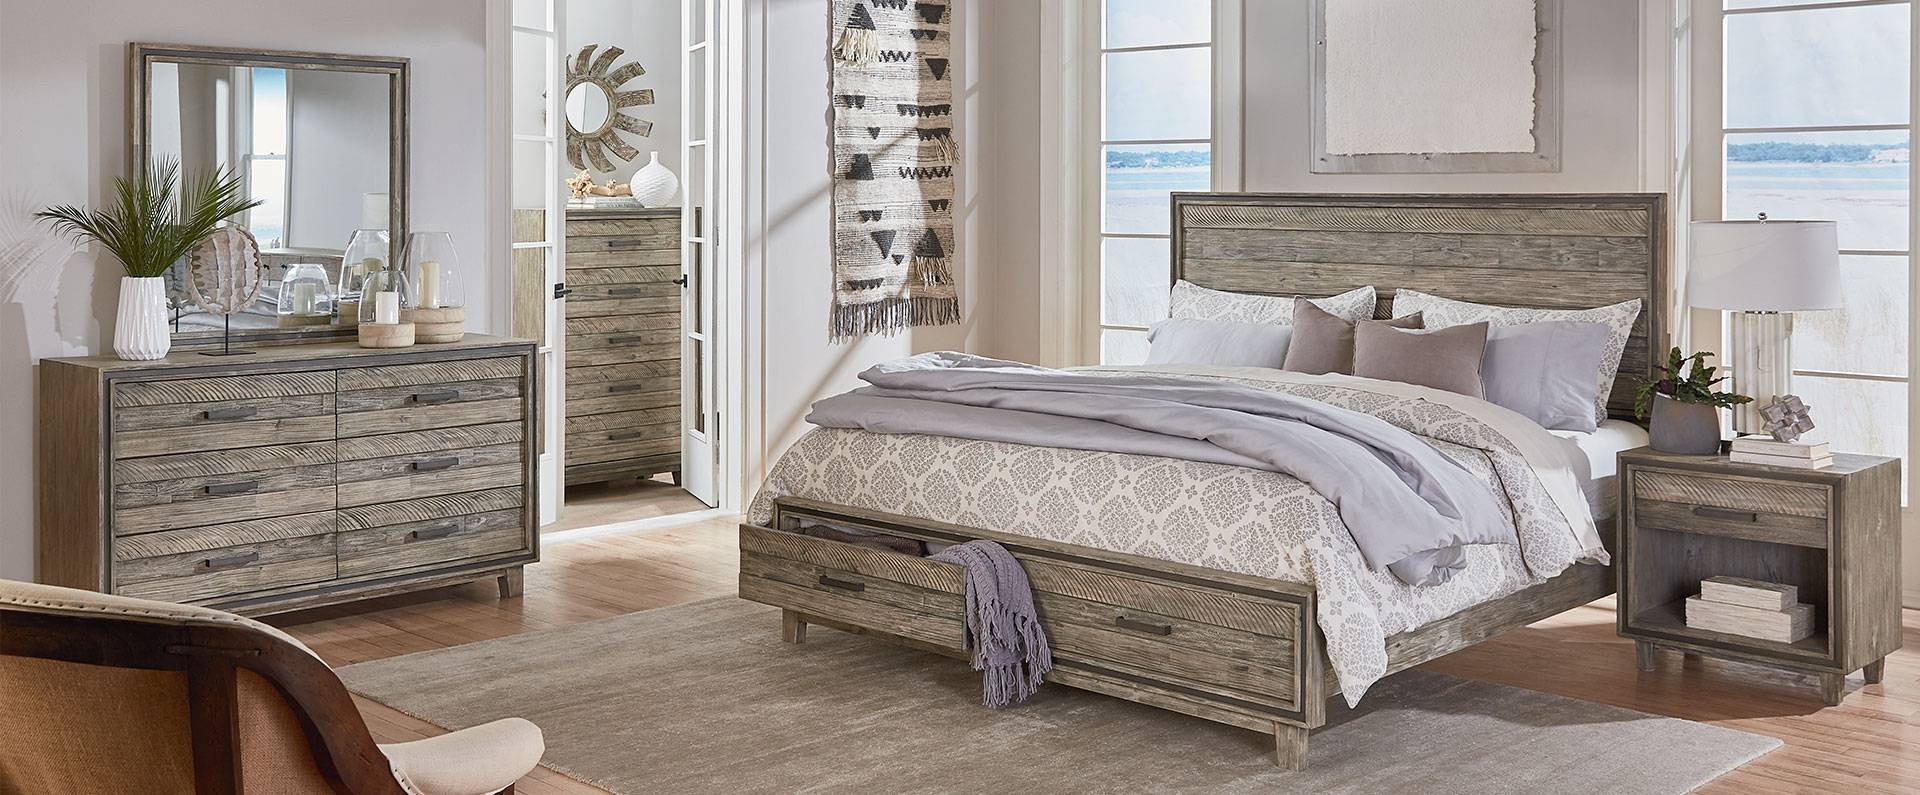 White Washed Bedroom Furniture Set Beautiful Home Trends & Design